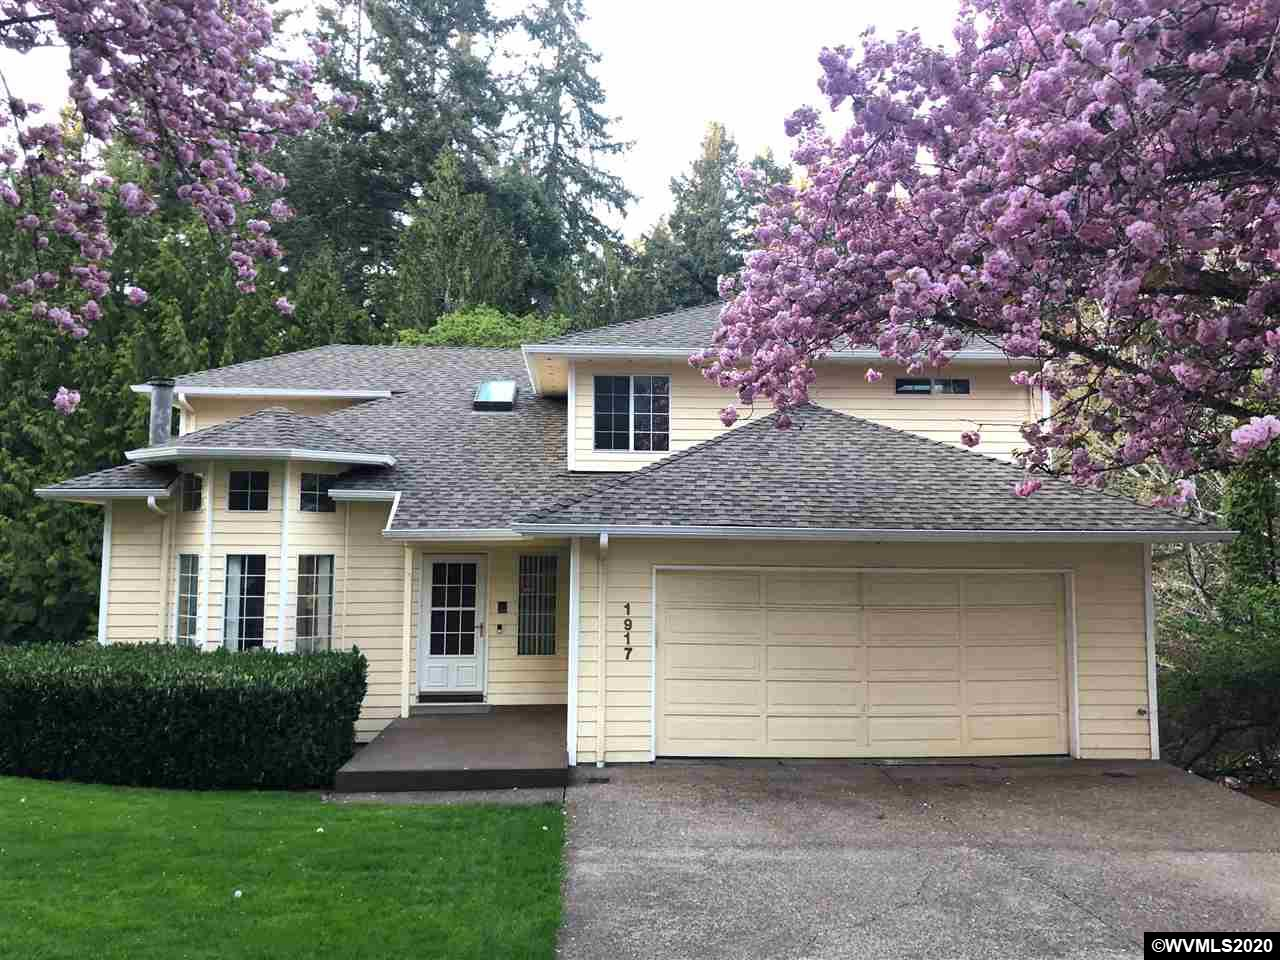 Come Home to this Beauty located in the desirable Forest Heights! Large Vaulted Living Room boasts Window-Seat, Fireplace & Formal Dining. Spacious Kitchen opens to Family Room w/Cozy Fireplace. Main Level Laundry too! Spoil yourself with Tree-House Views from MB Suite w/Jetted Tub & enormous Walk-in Closet+ Stack-able Laundry. 1000+ Sf Basement includes Theater/Rec Rm, Workout/Office, 4th Bedroom & oodles of Storage. Revel in Nature from your Deck while you entertain or relax in your Private Oasis.